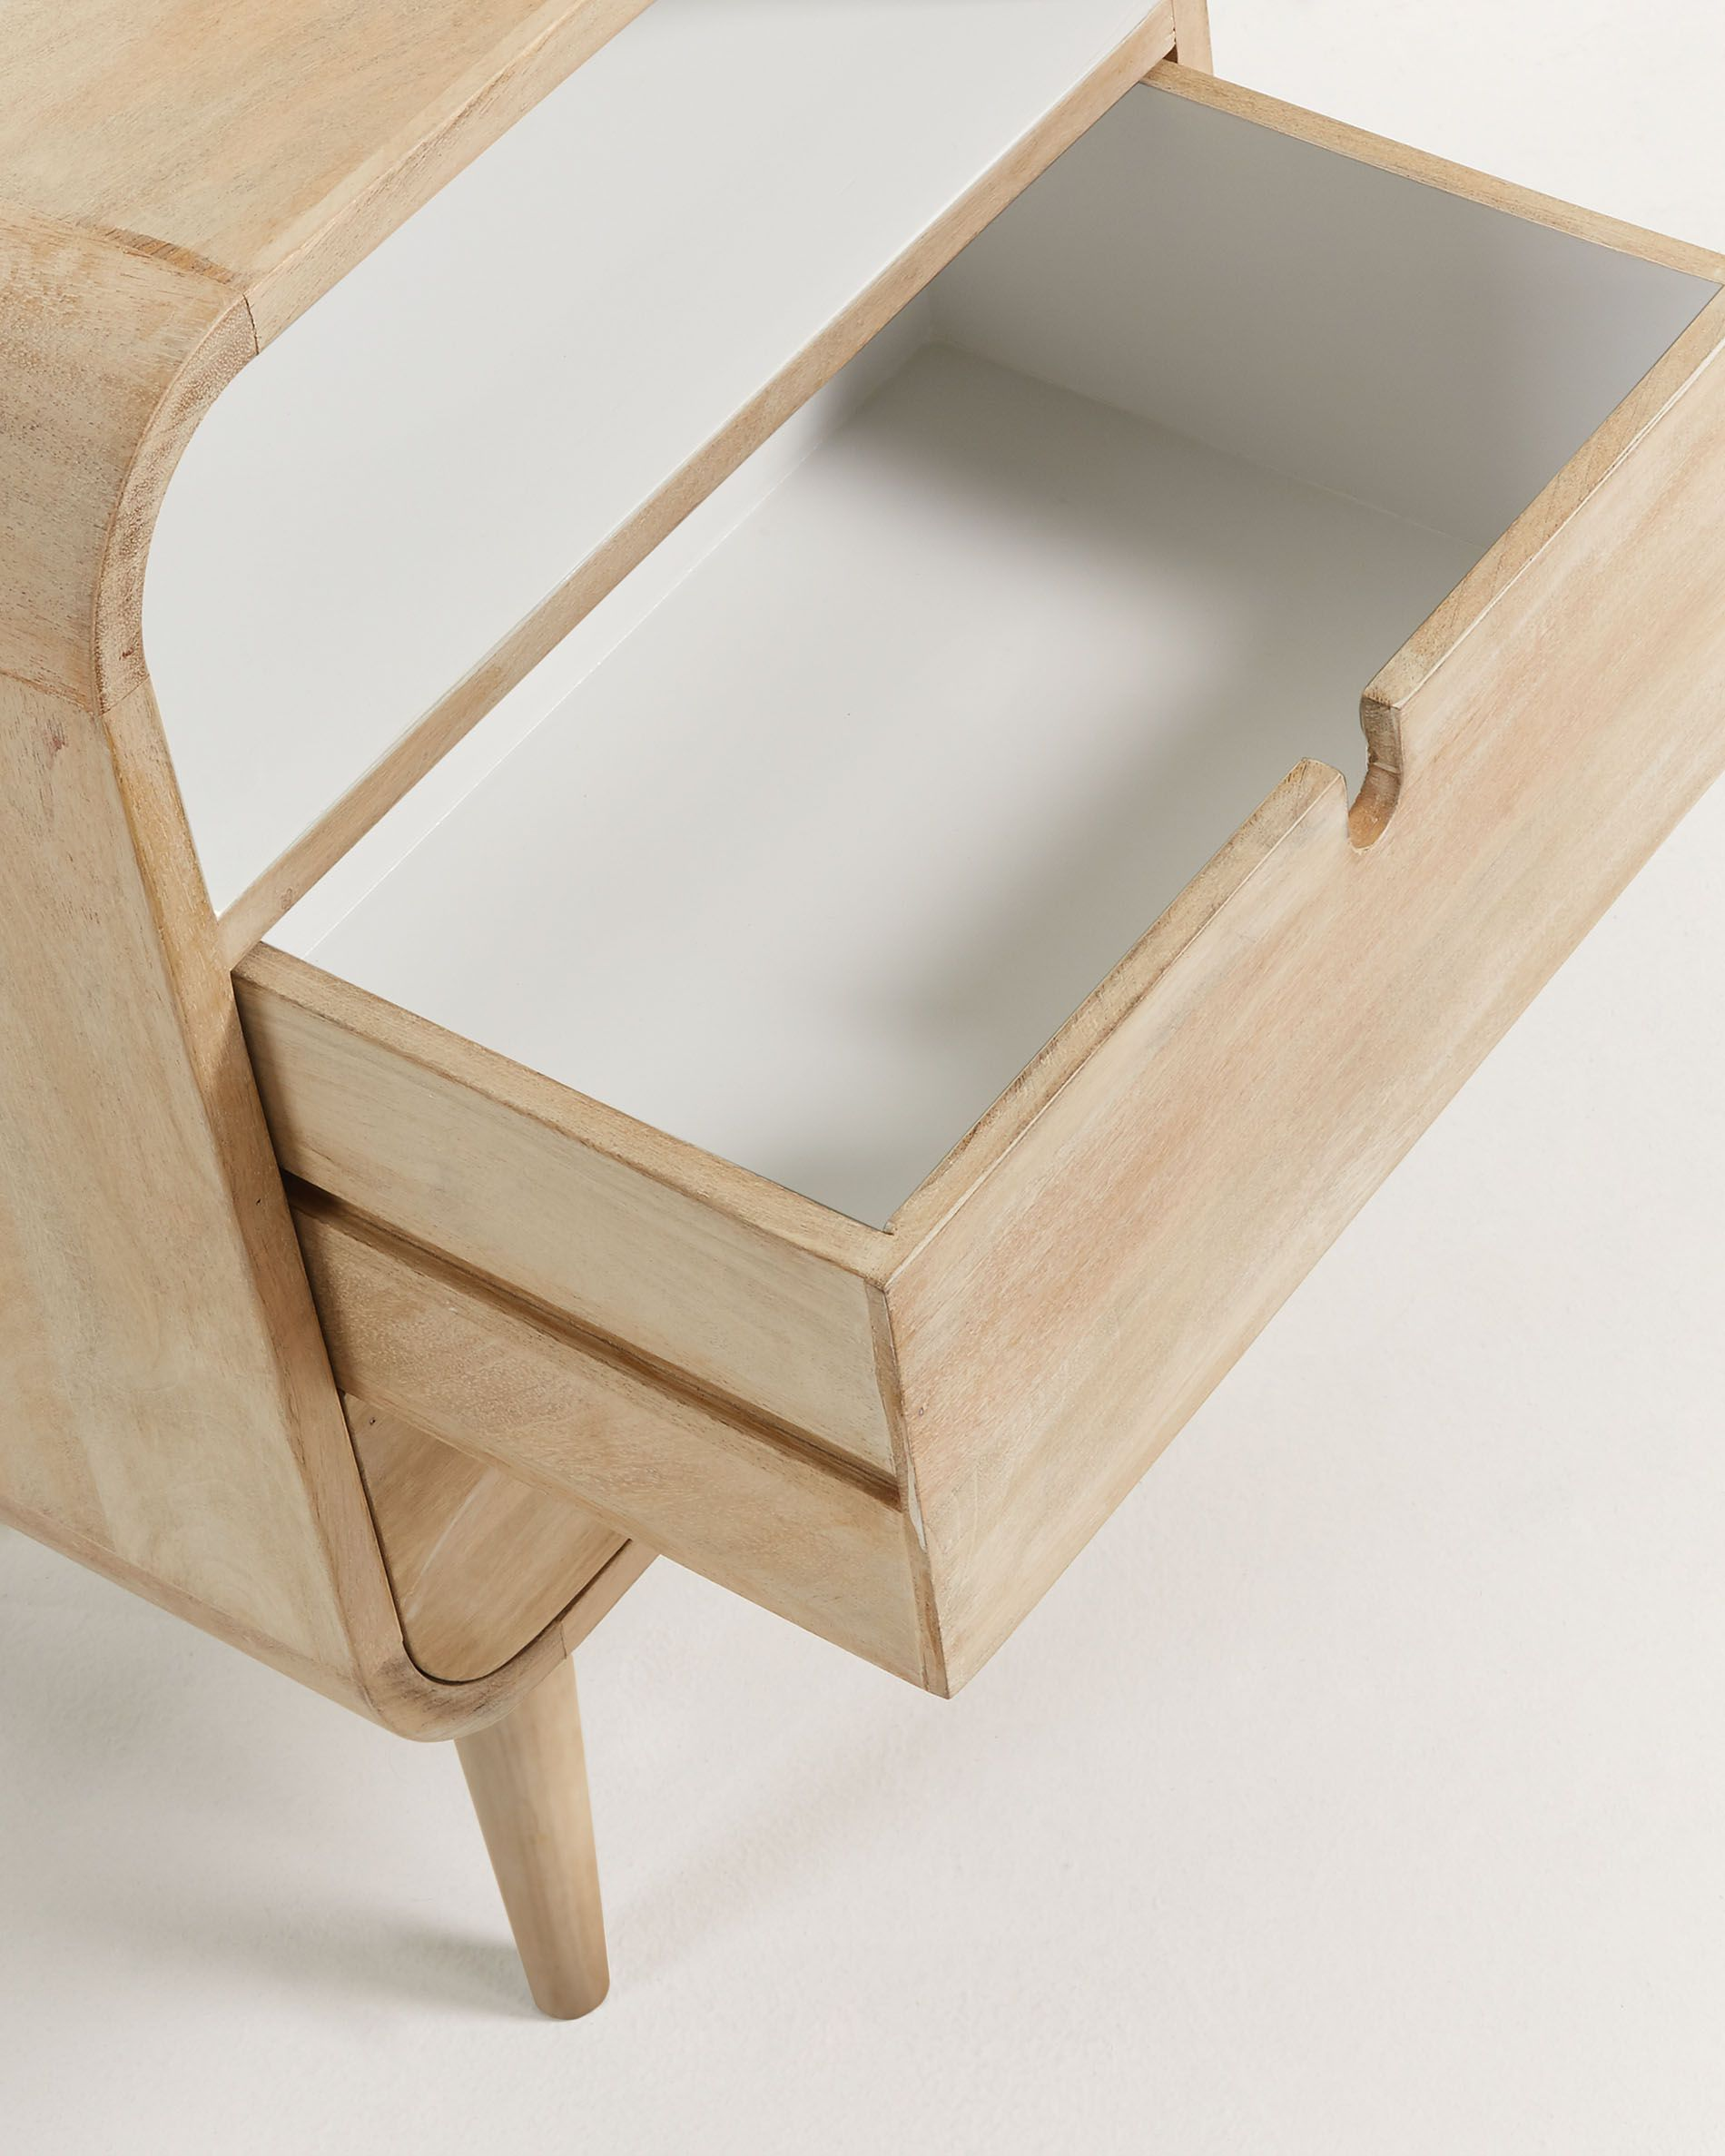 Table Carree Exterieur Best Of Table De Chevet Georg Naturel Et Blanc Of 34 Élégant Table Carree Exterieur